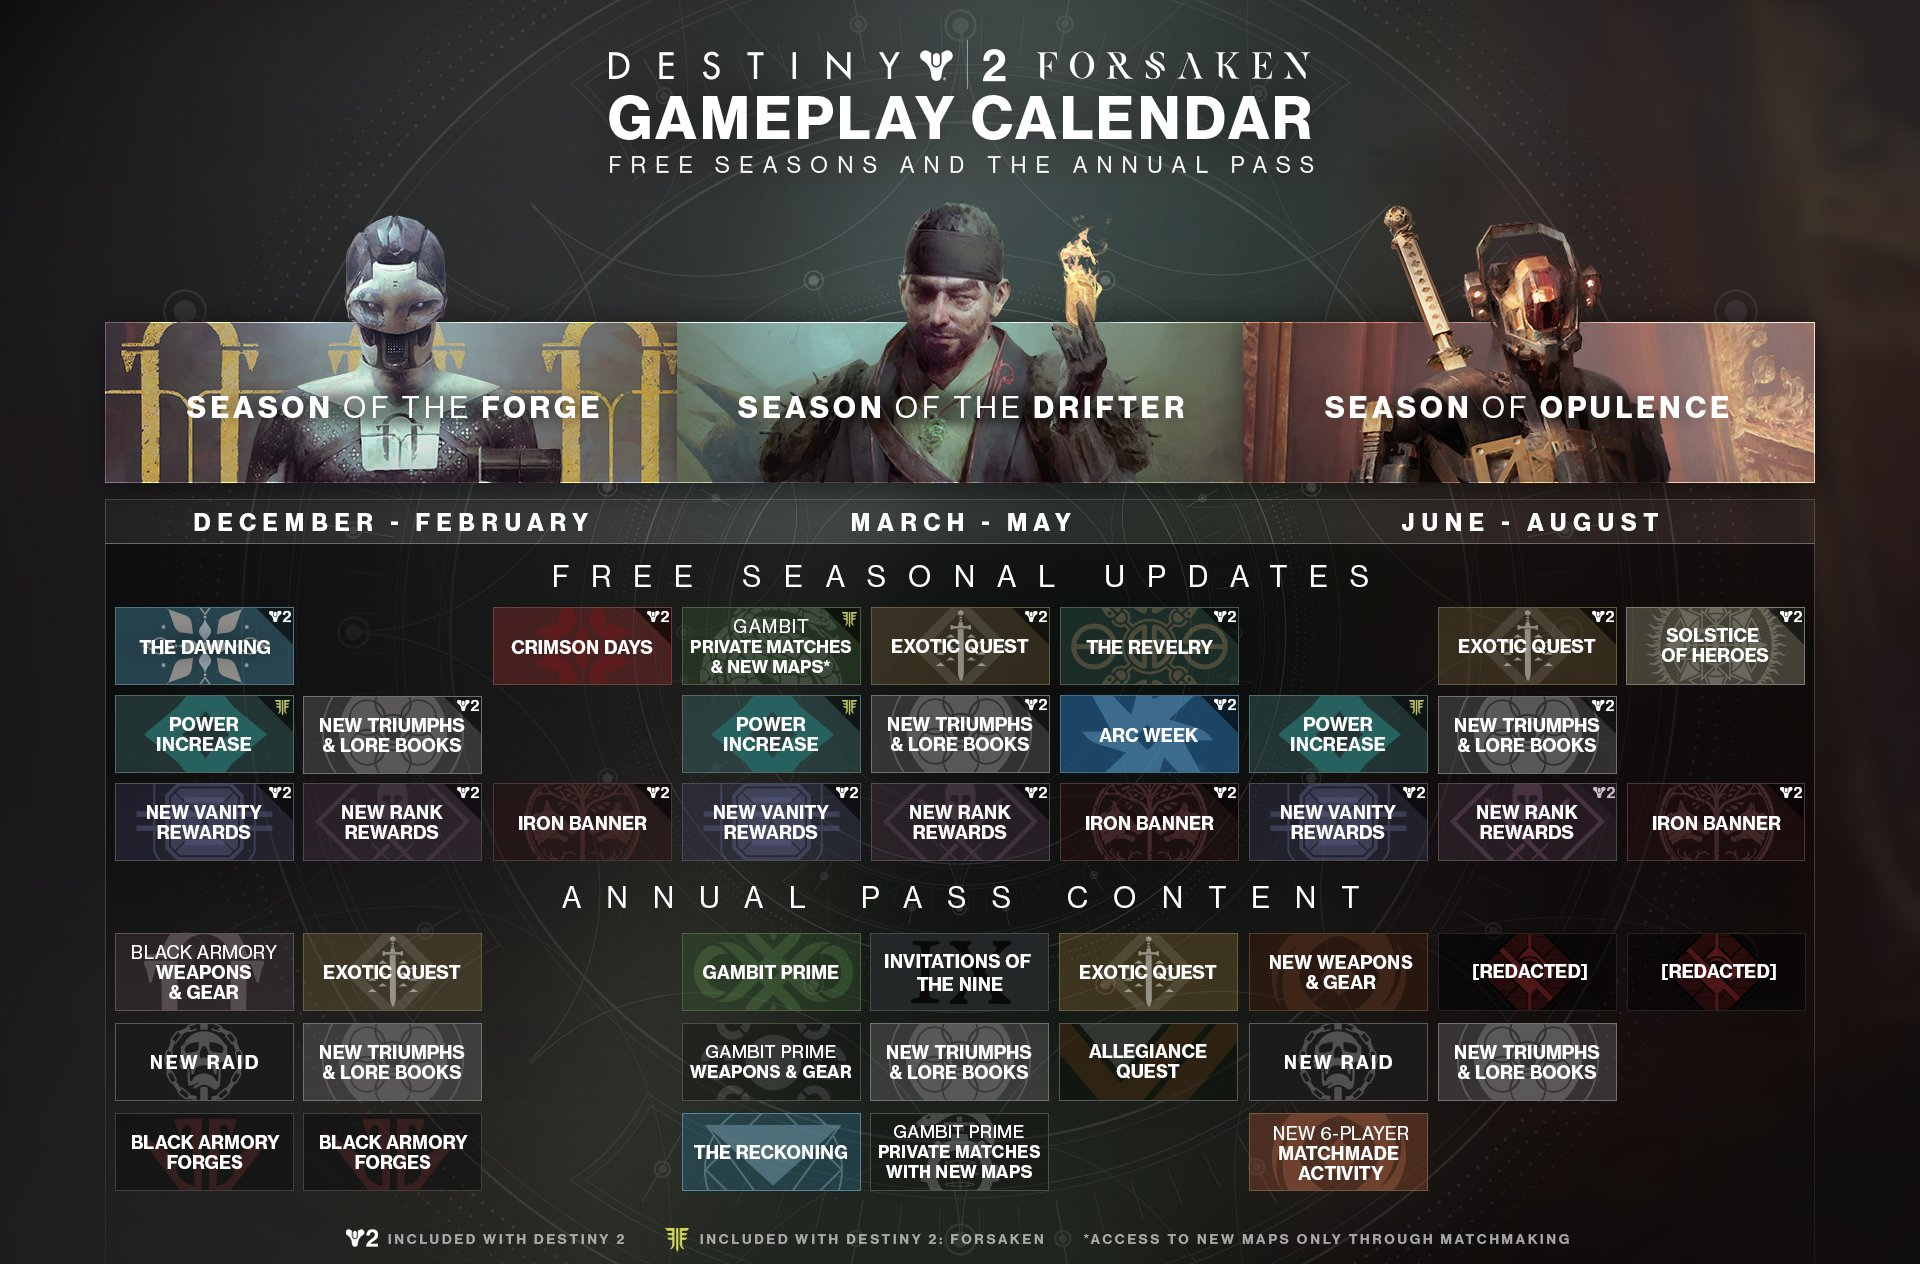 Bungie has offered a full calendar and roadmap breakdown for Season of the Drifter in Destiny 2.